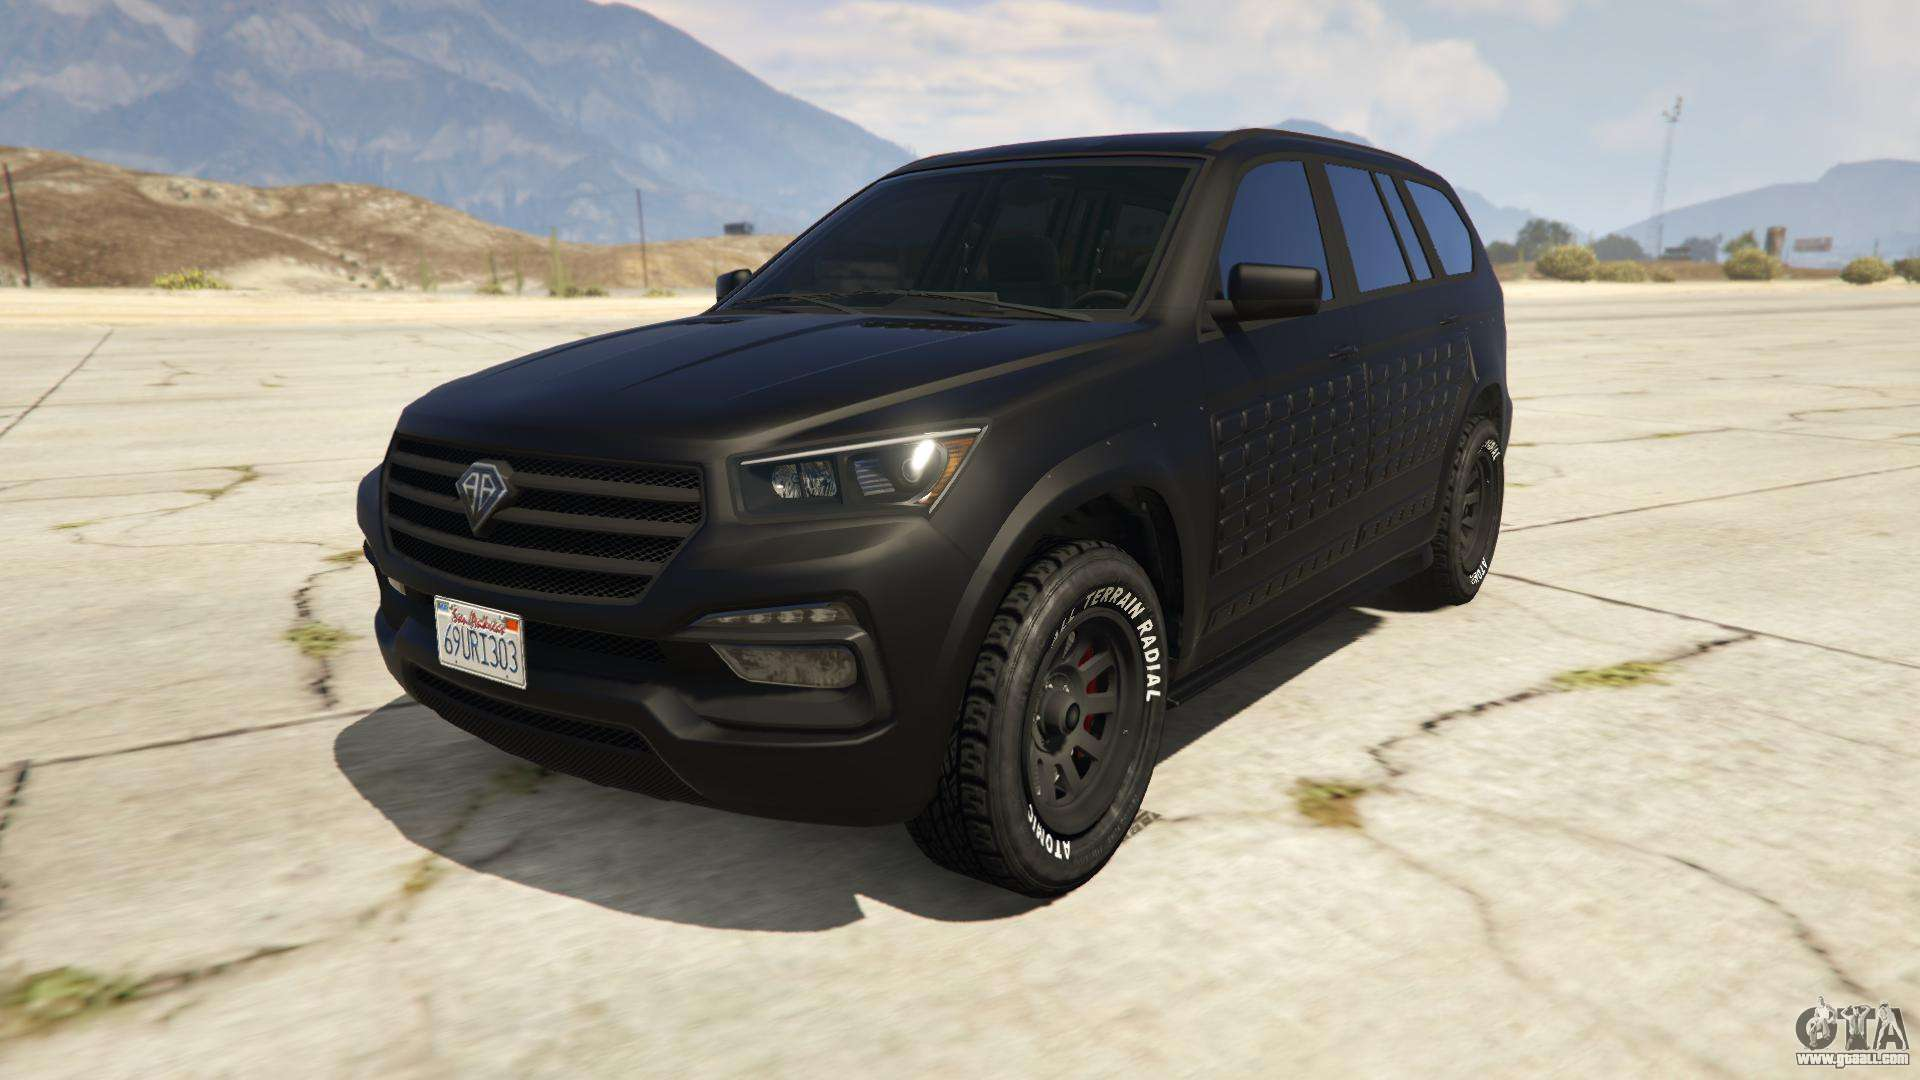 XLS Benefactor (Armored) from GTA Online - front view